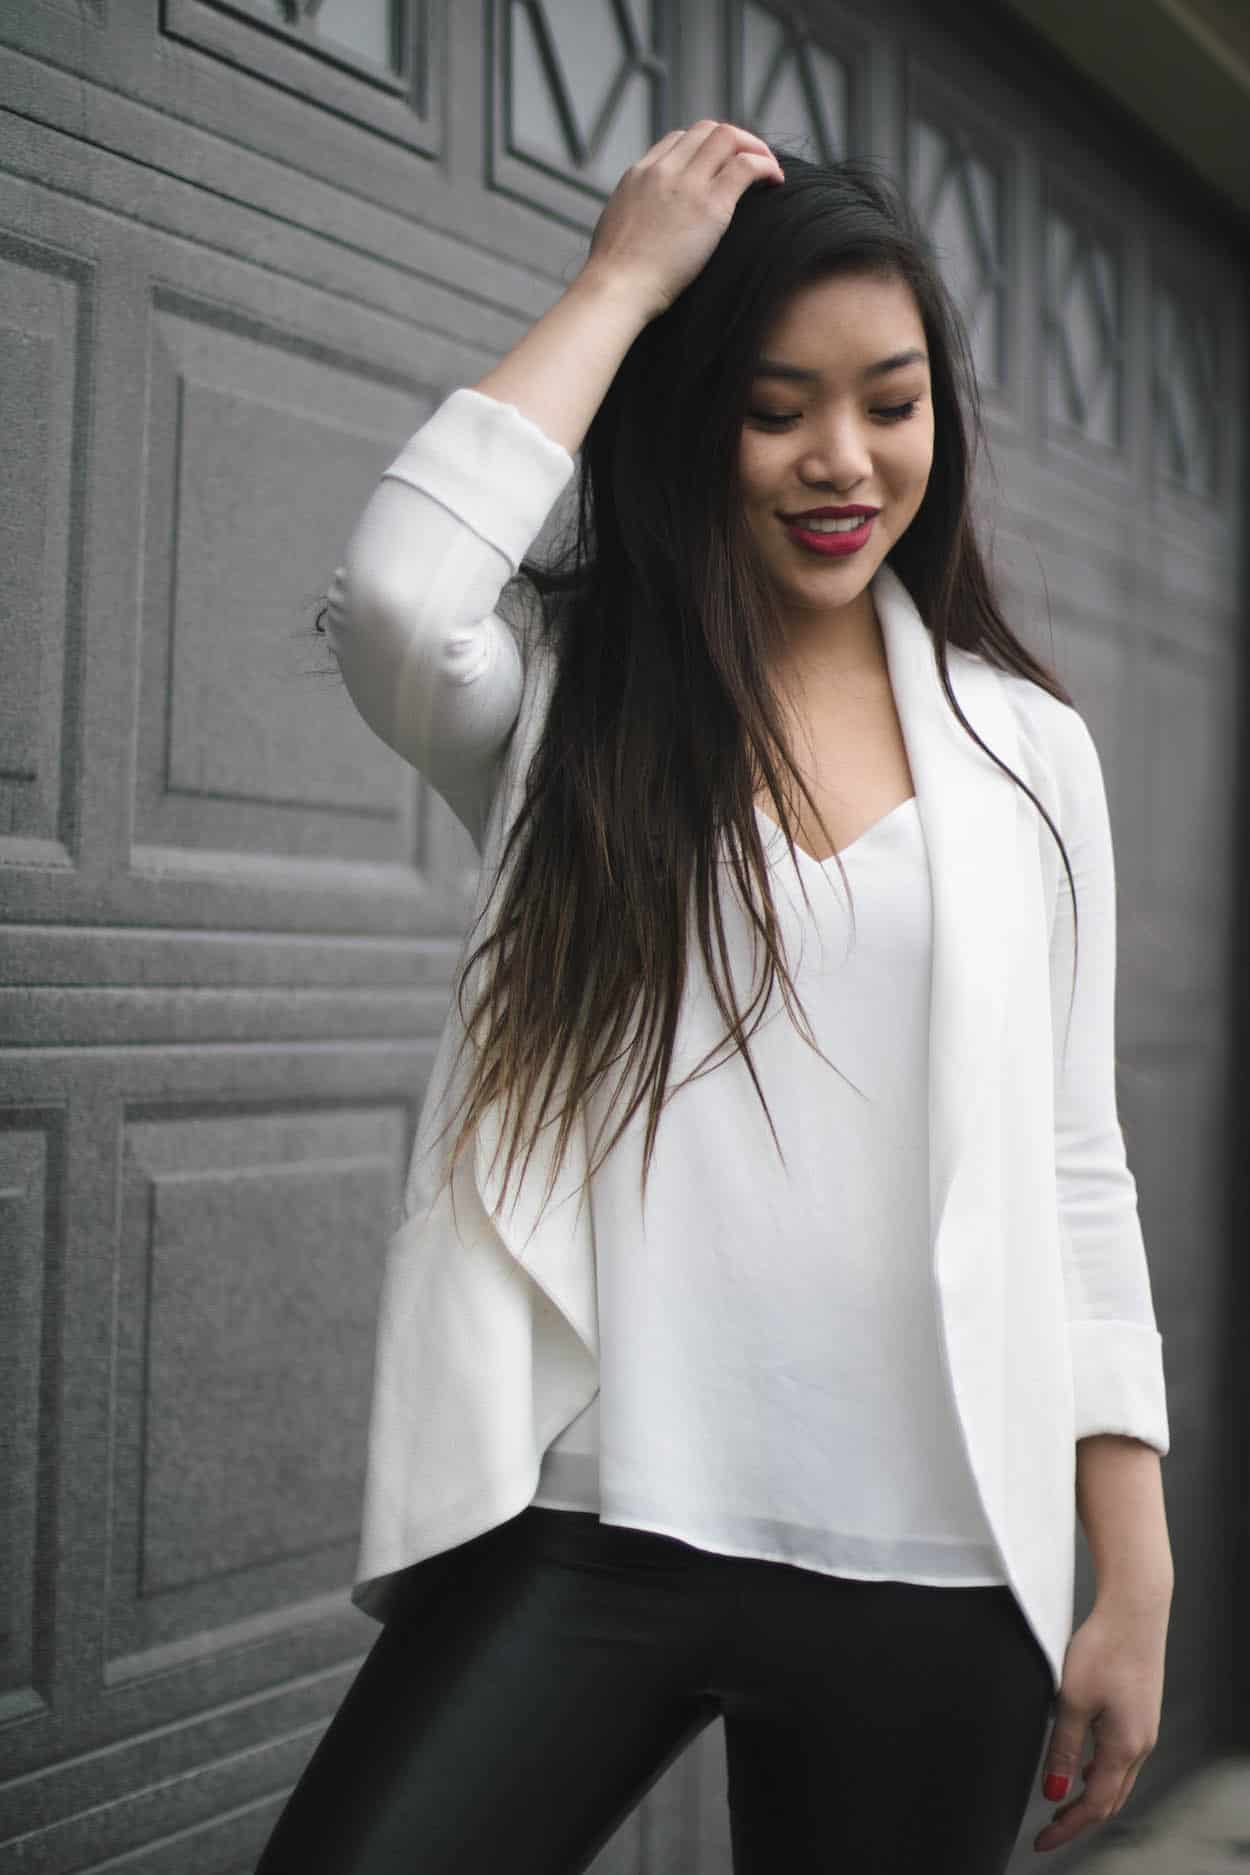 Simple Valentine's Day outfit ideas for every occasion, whether it's a casual work day or a romantic date night out!